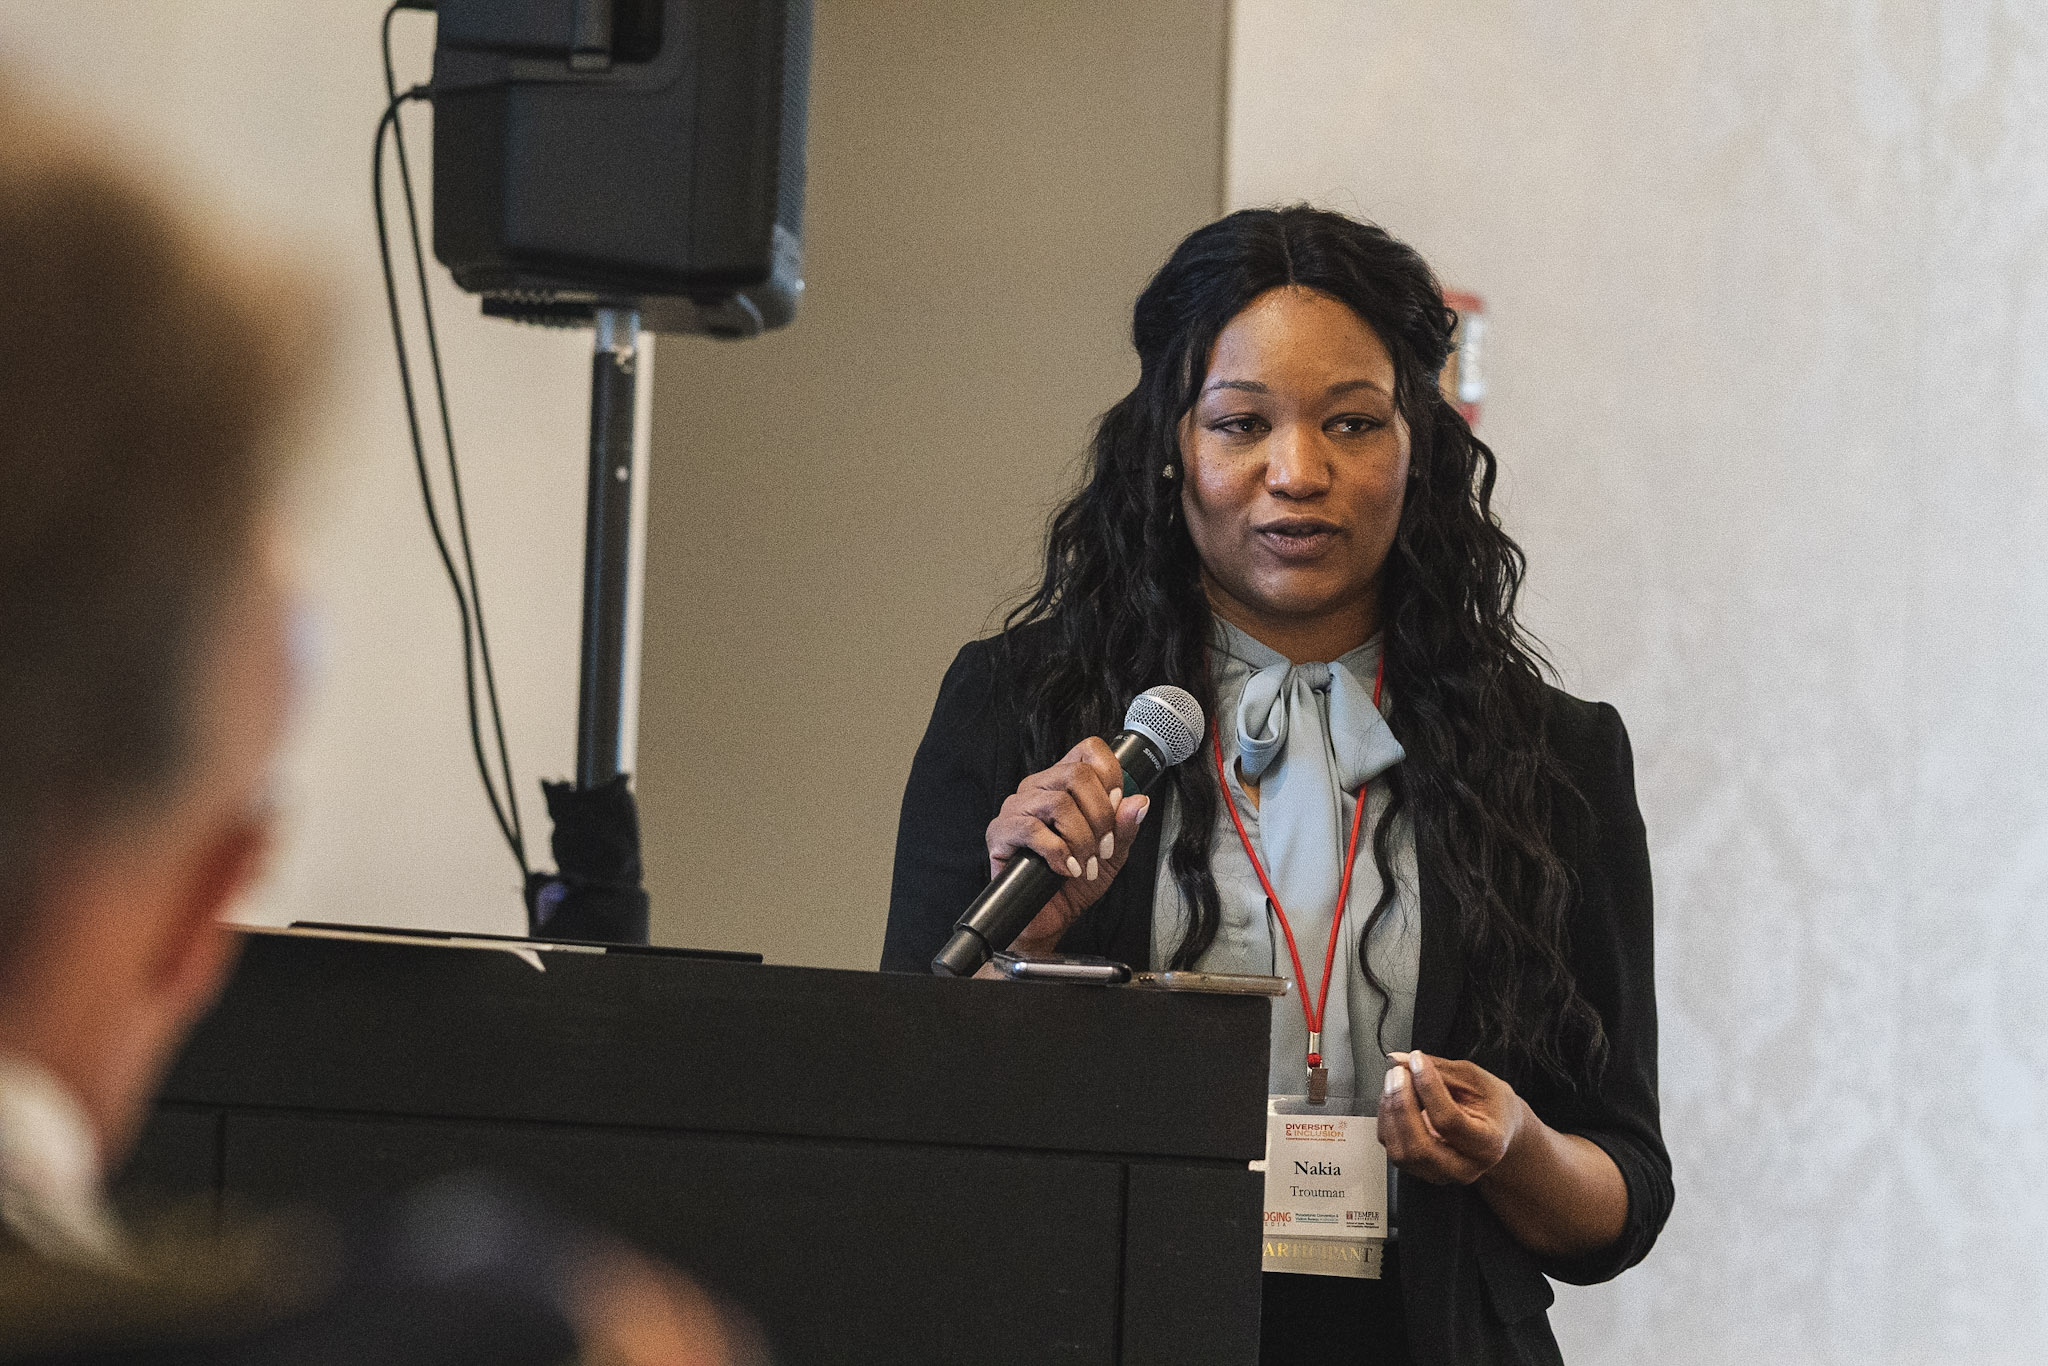 2019 Philadelphia Diversity & Inclusion Conference-106595-March 25, 2019100.jpg